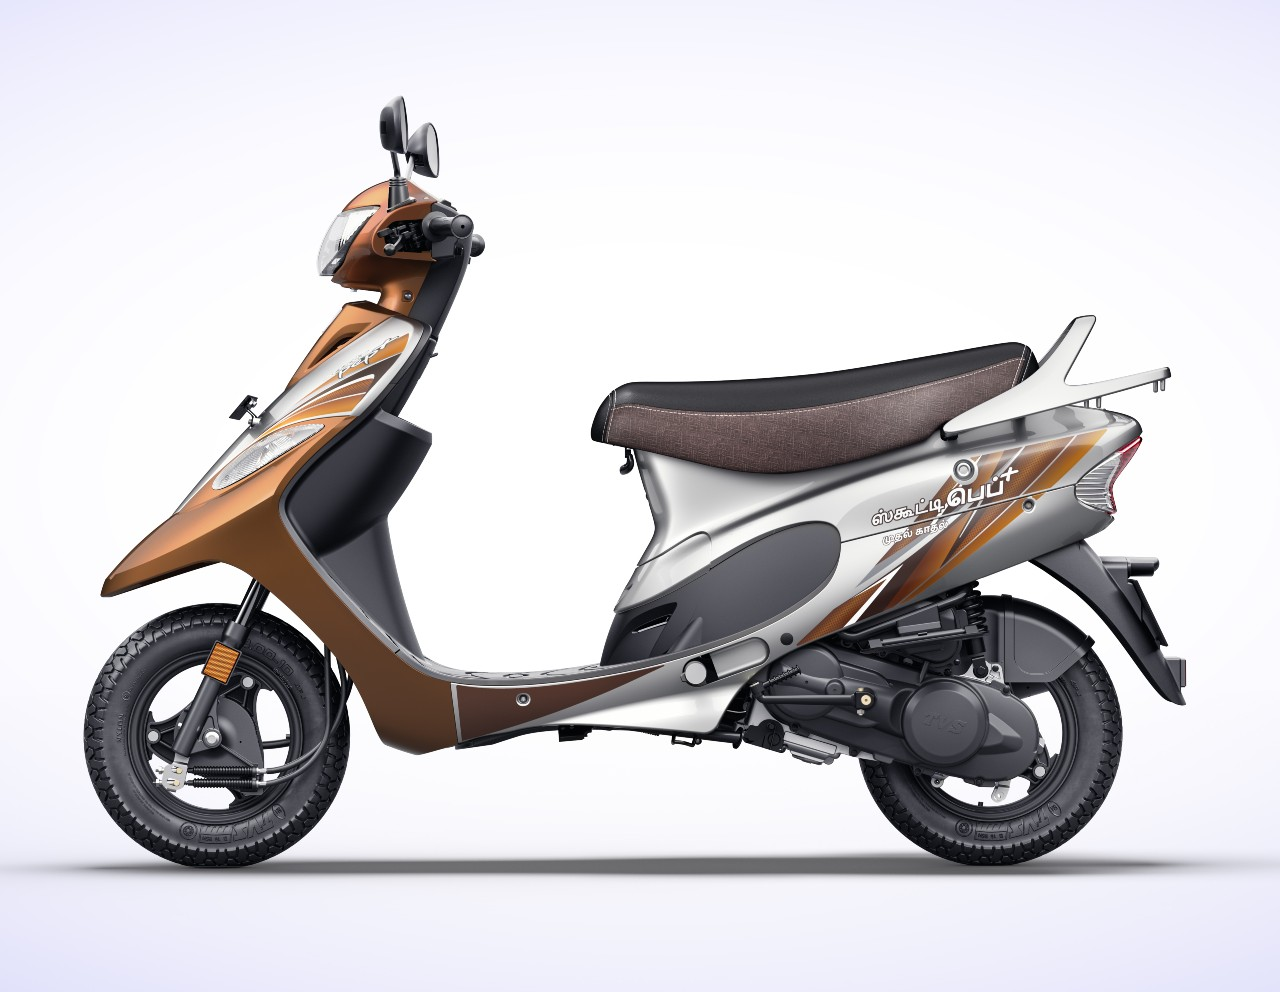 TVS Scooty Pep Plus 'Mudhal Kadhal' edition launched exclusively for Tamil Nadu